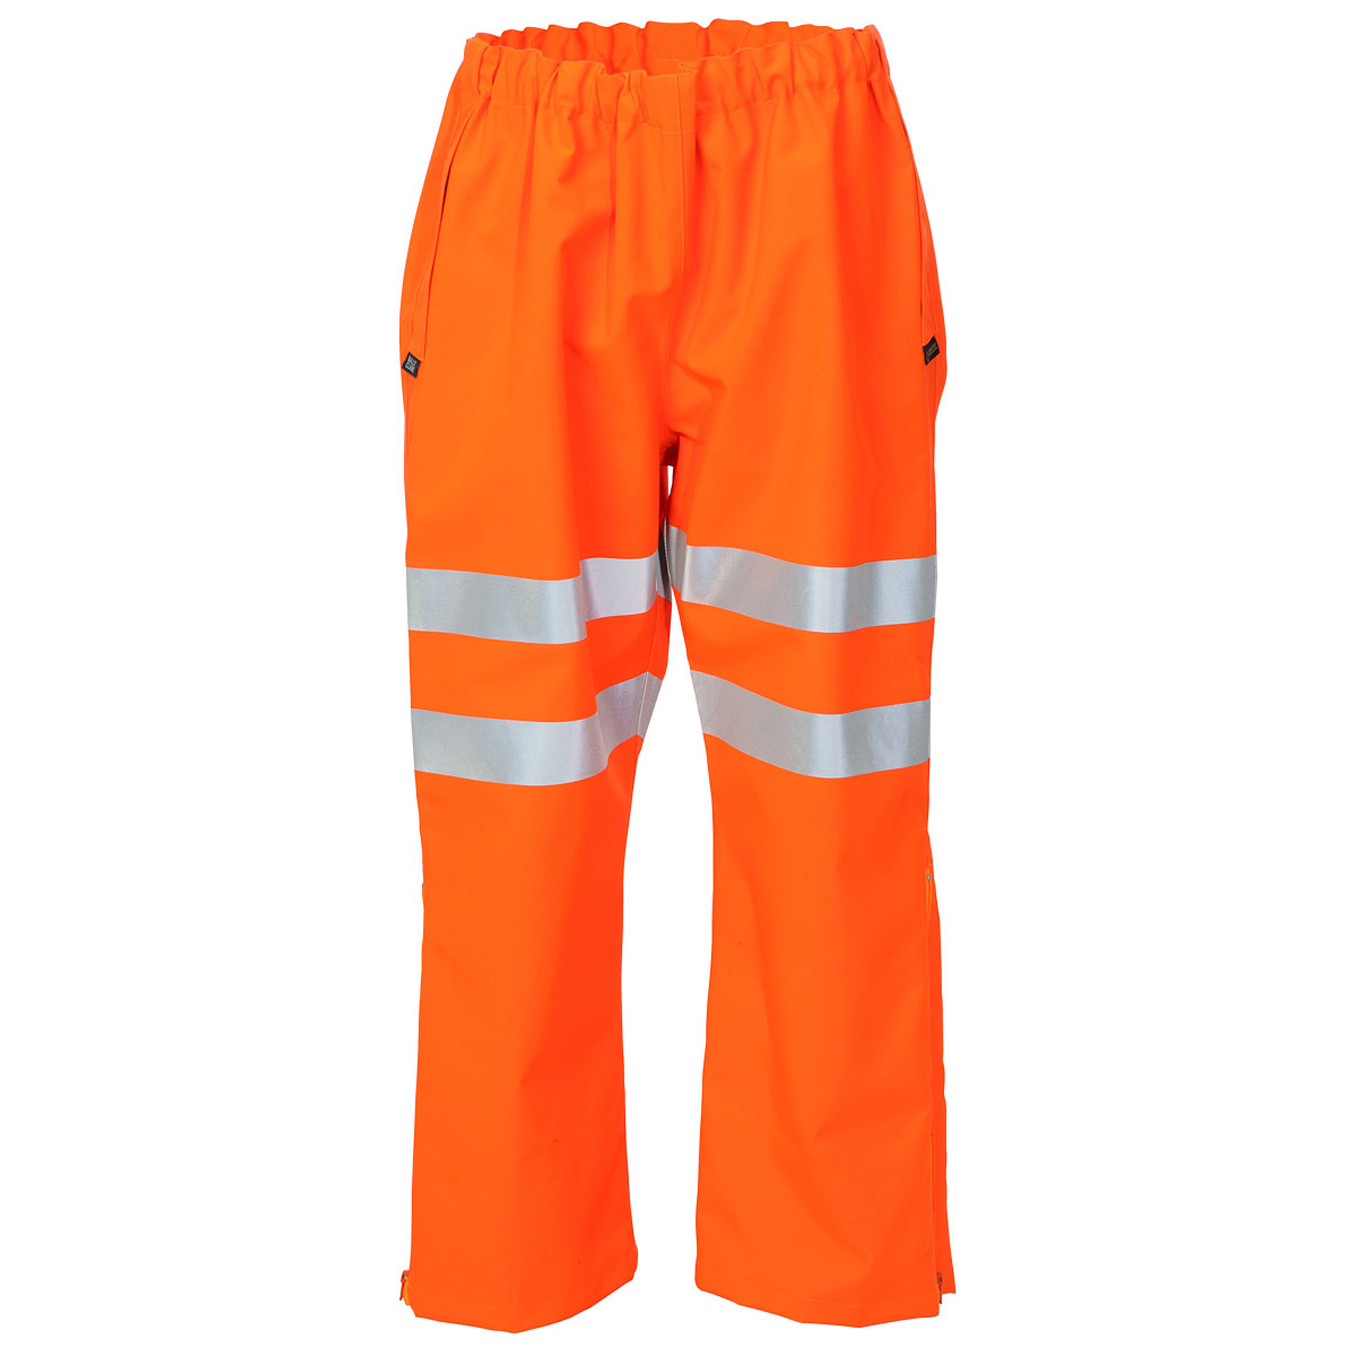 Body Protection B-Seen Gore-Tex Over Trousers Foul Weather L Orange Ref GTHV160ORL *Up to 3 Day Leadtime*